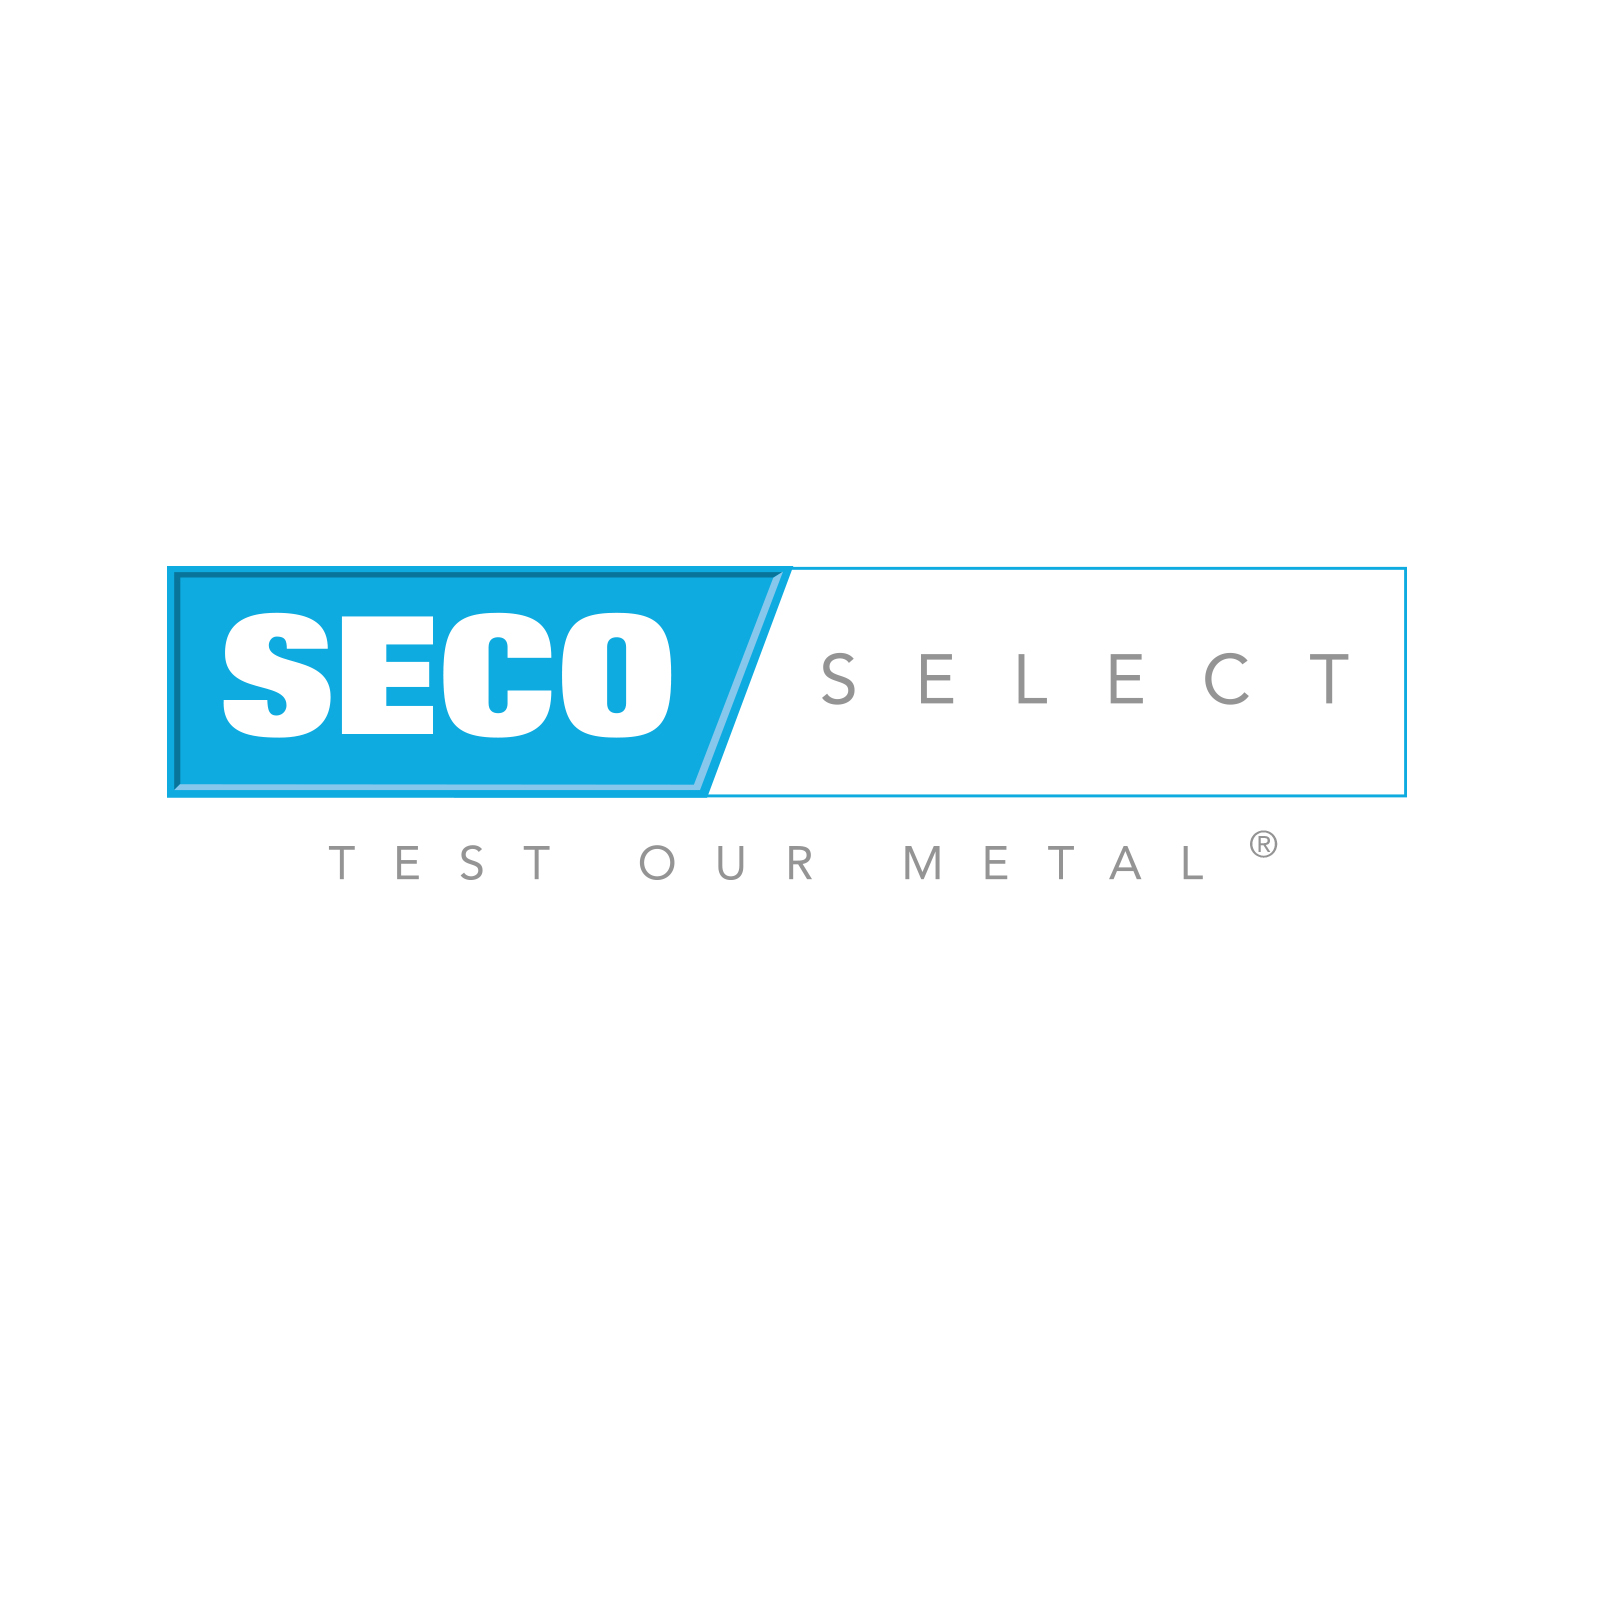 seco_website.jpg